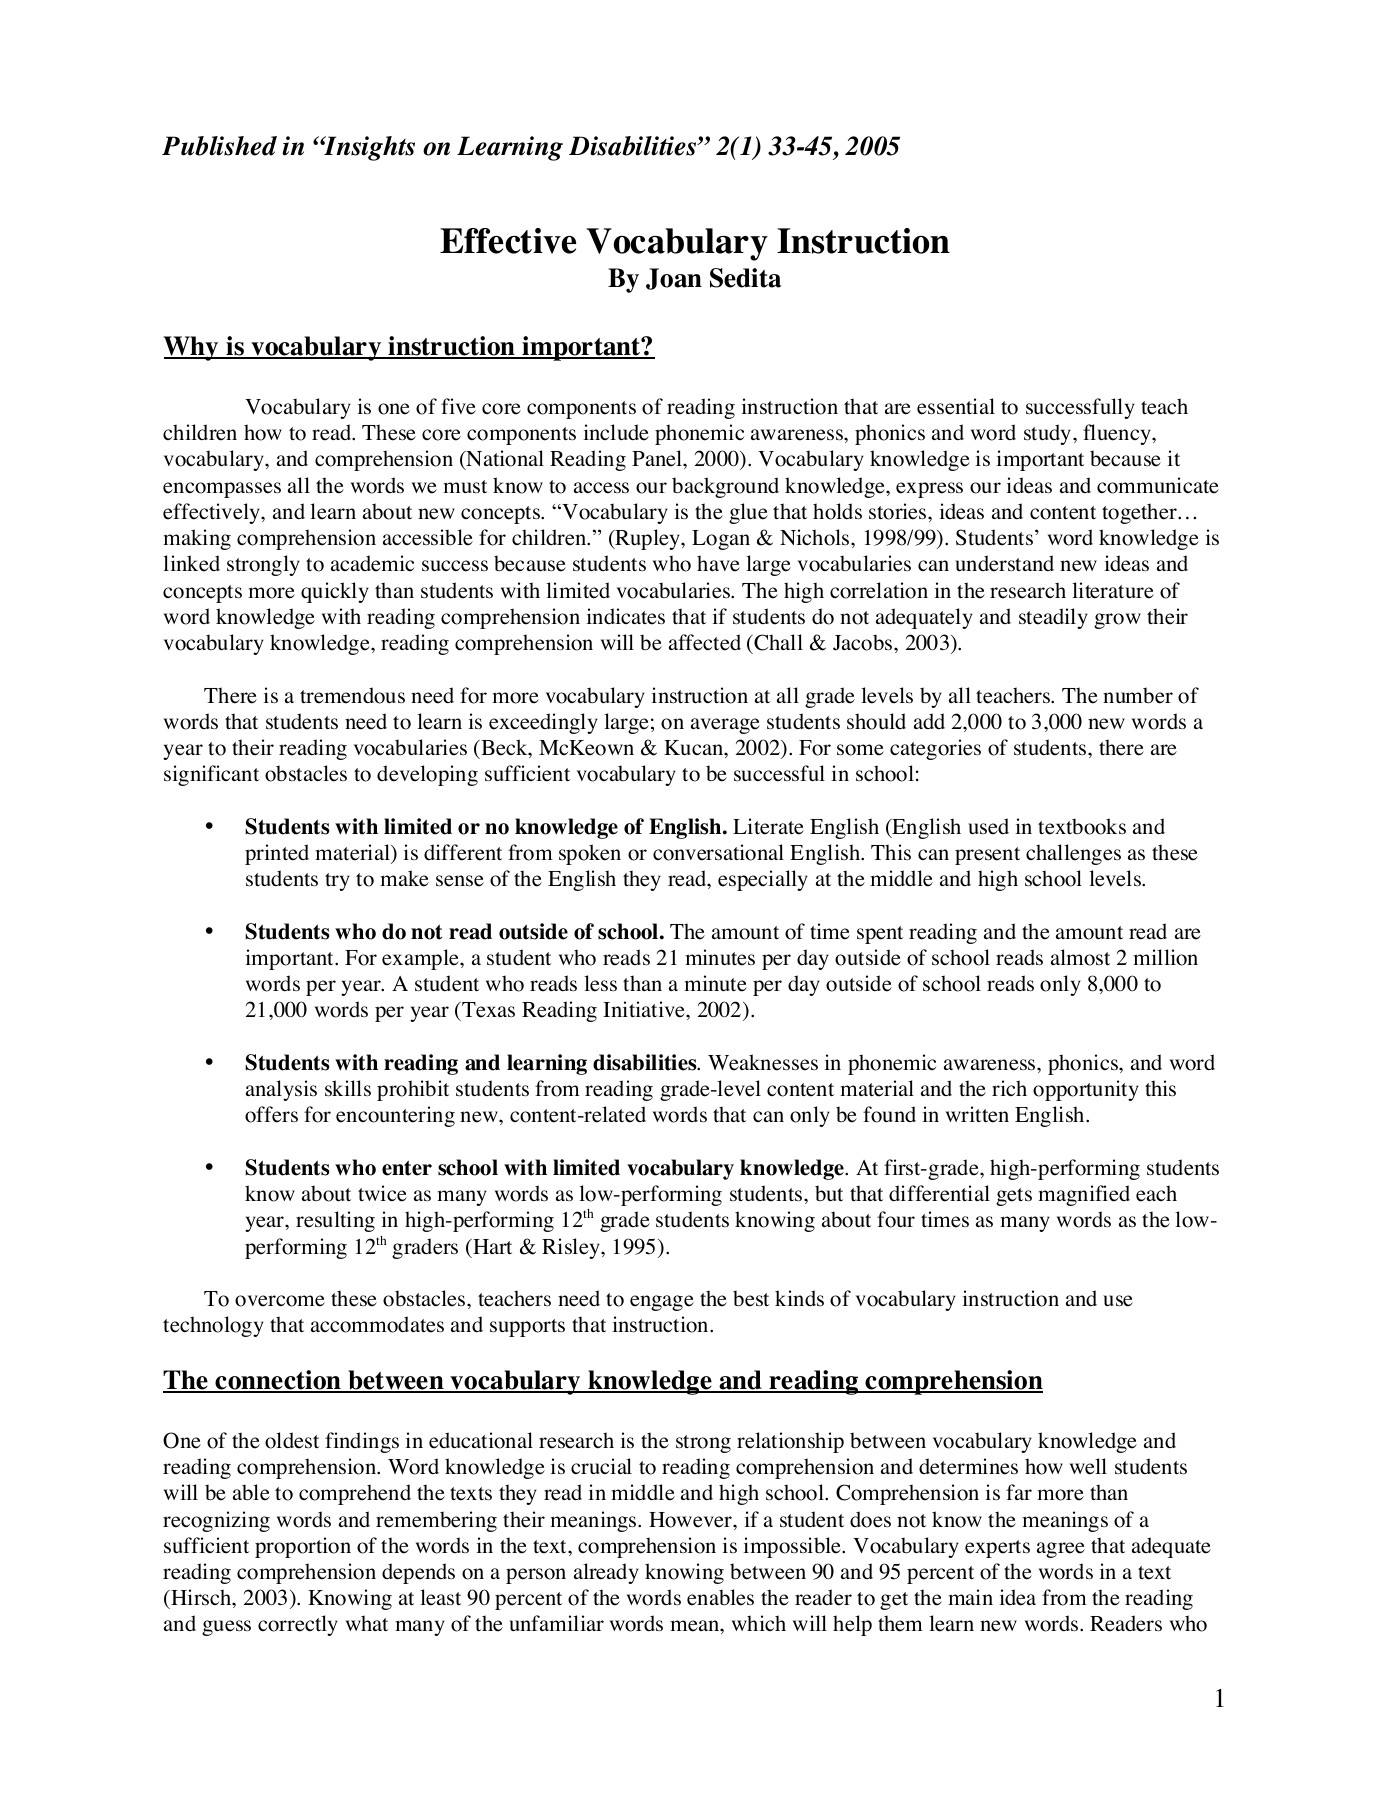 Effective Vocabulary Instruction - Keys to Literacy Pages 1